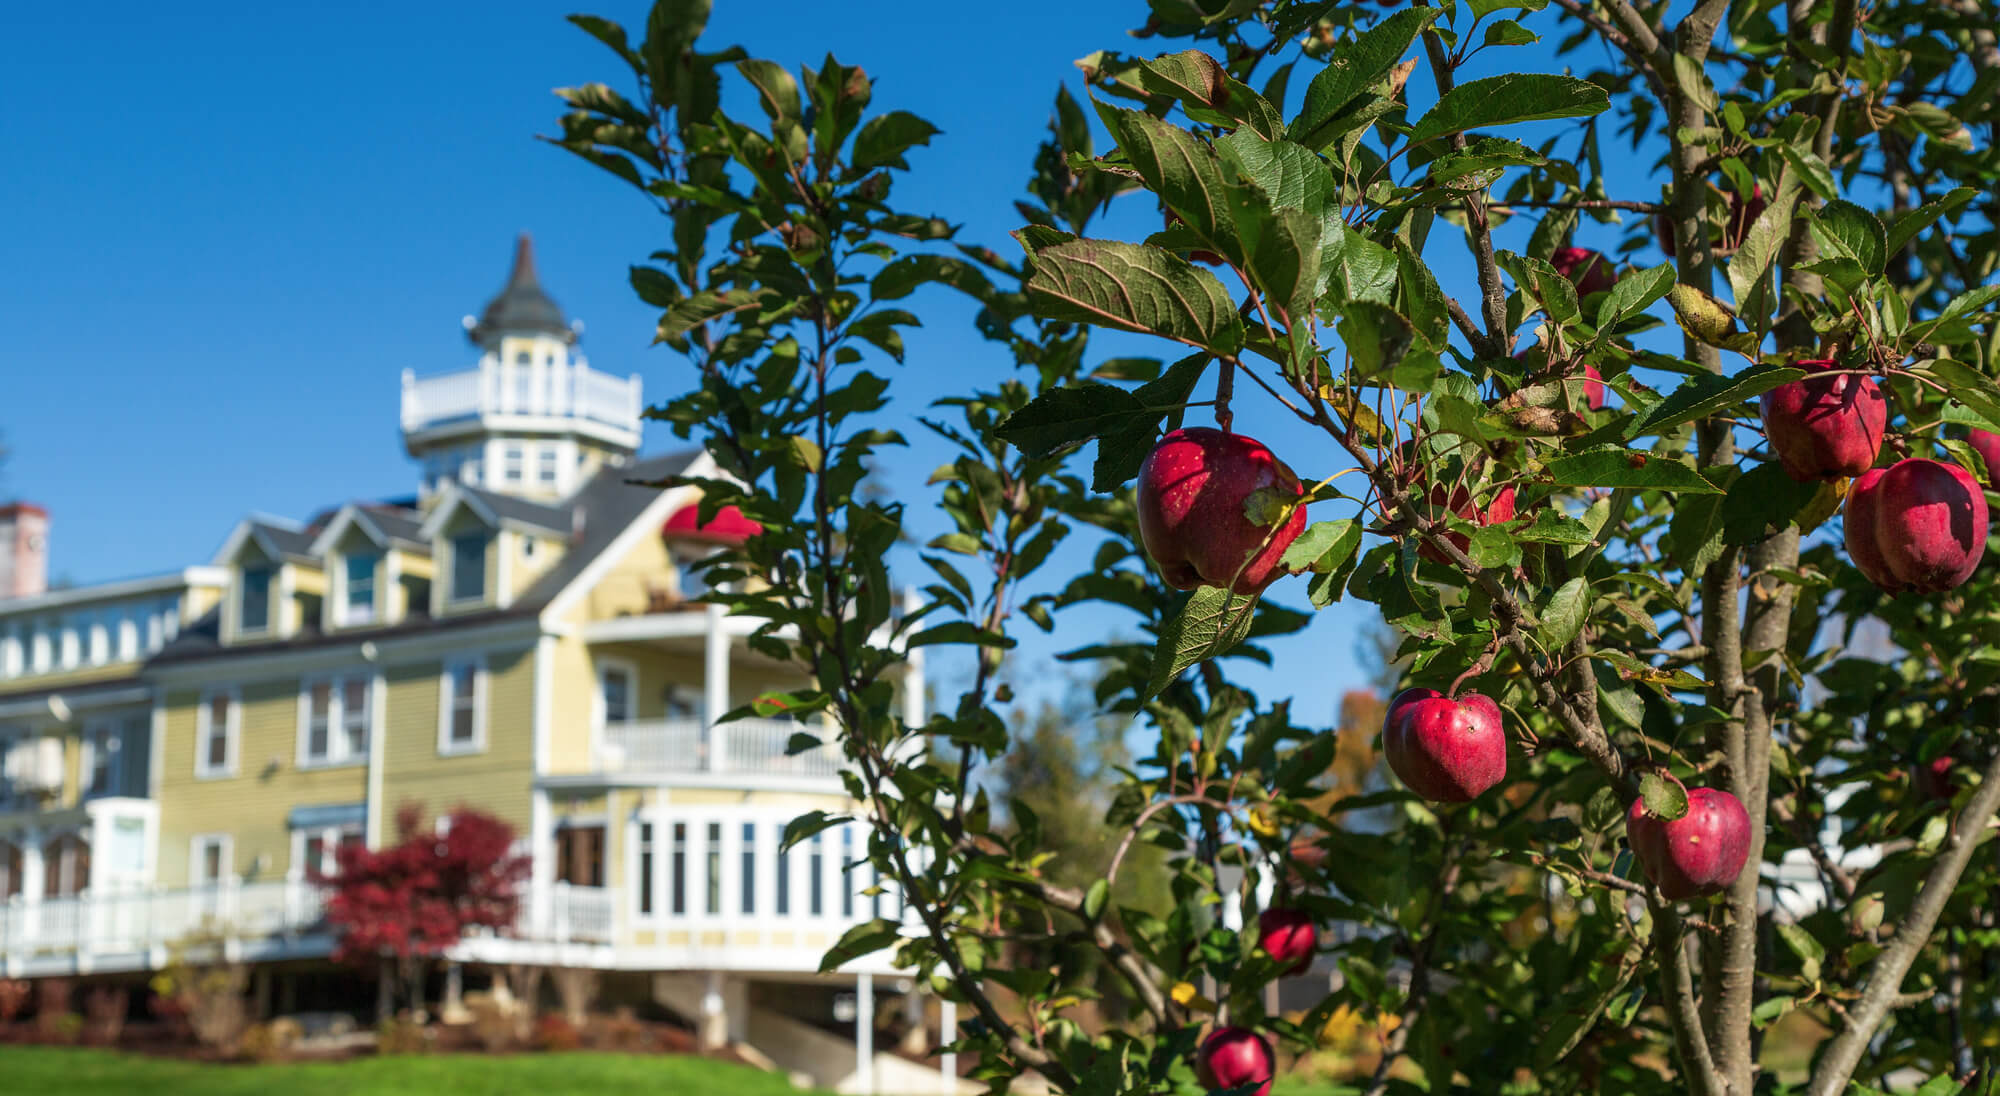 Romantic Maine inn with apple tree